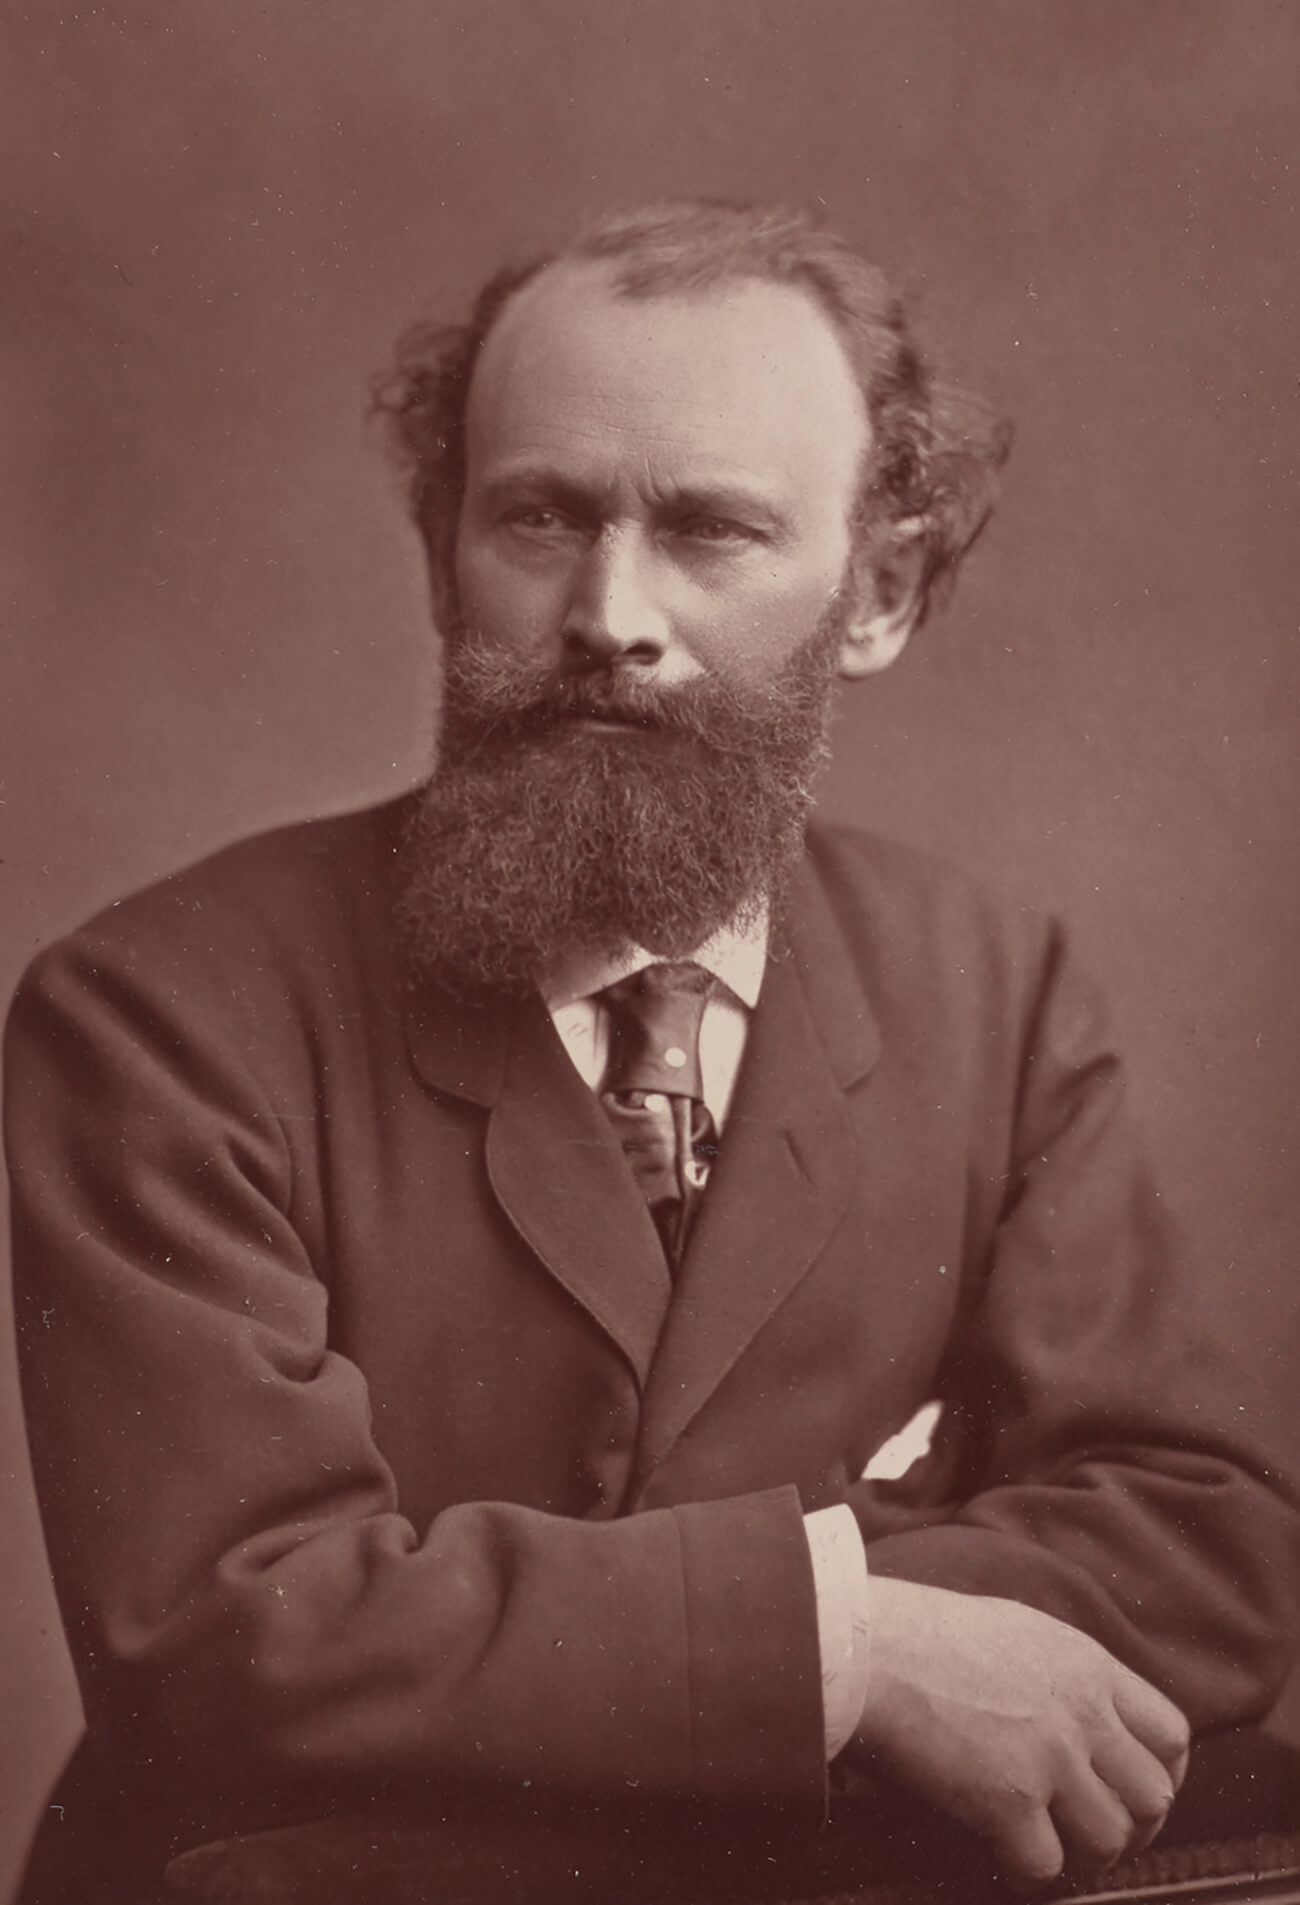 Édouard Manet, bearded and wearing a suit jacket and tie.